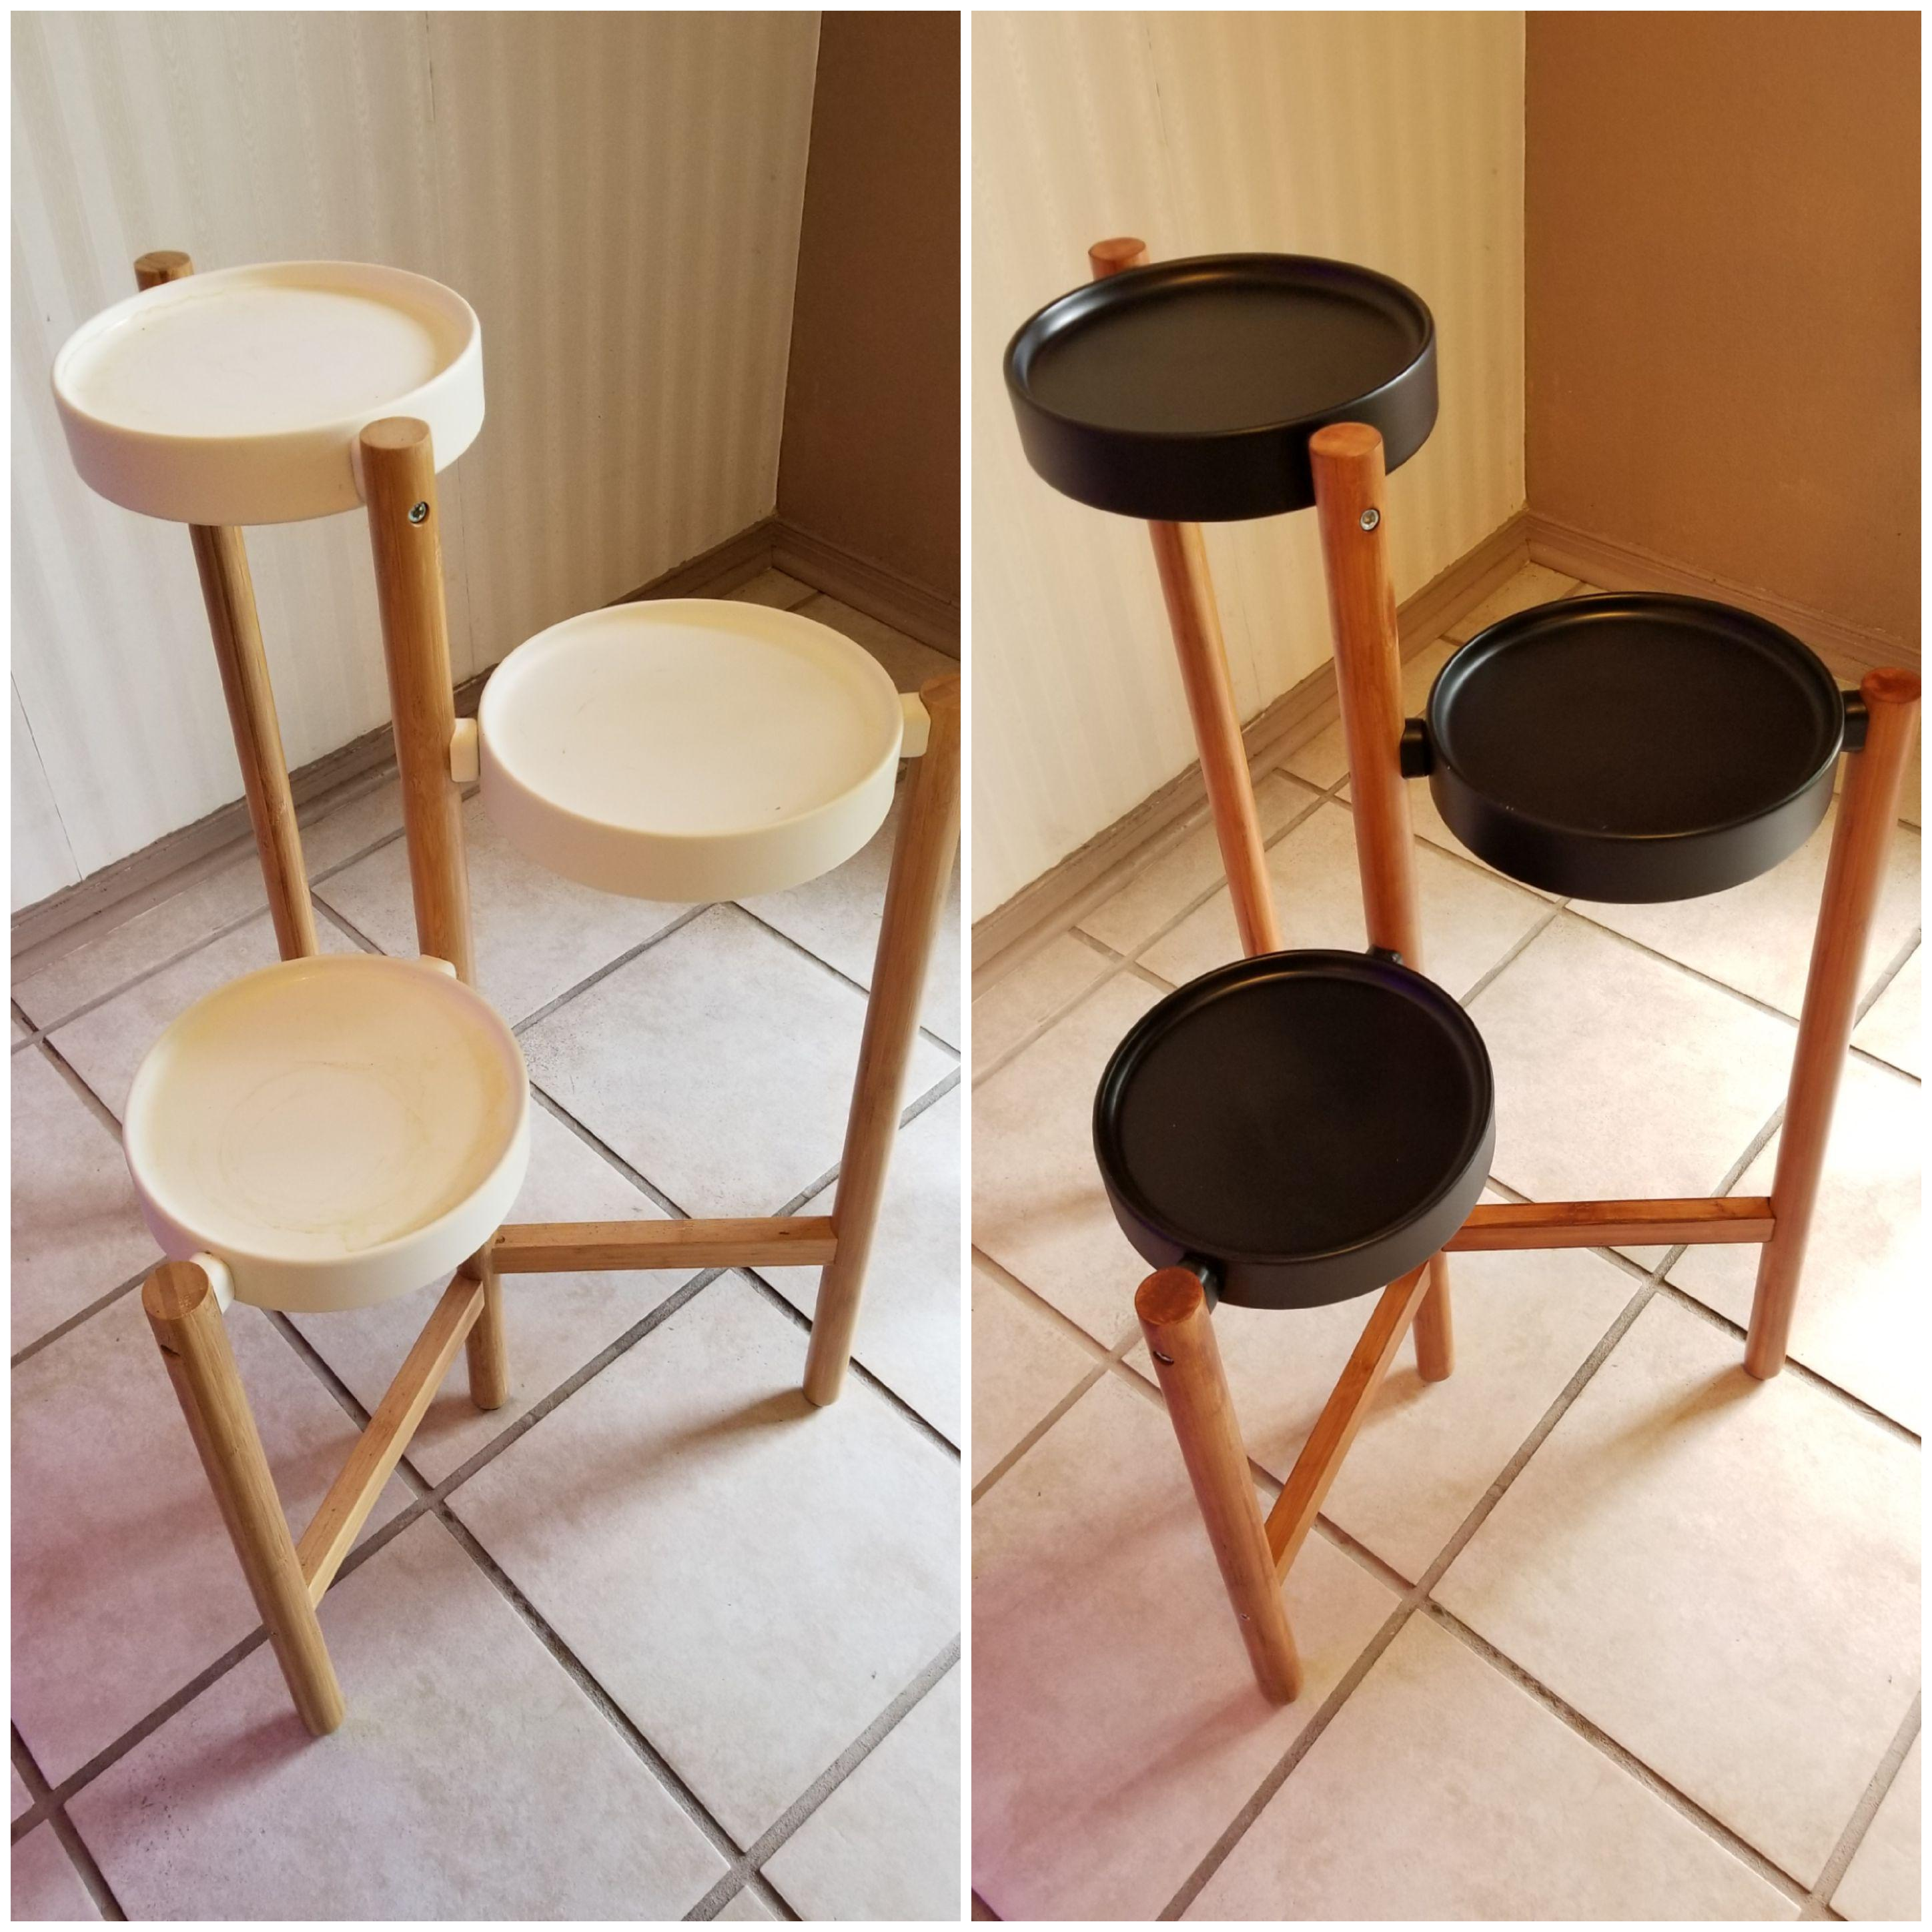 I Bought One Of These Ikea Plant Stands A Couple Of Years Ago And Mentioned I Might Paint And Stain It People Asked Me To Post Pics Of I Did More Info